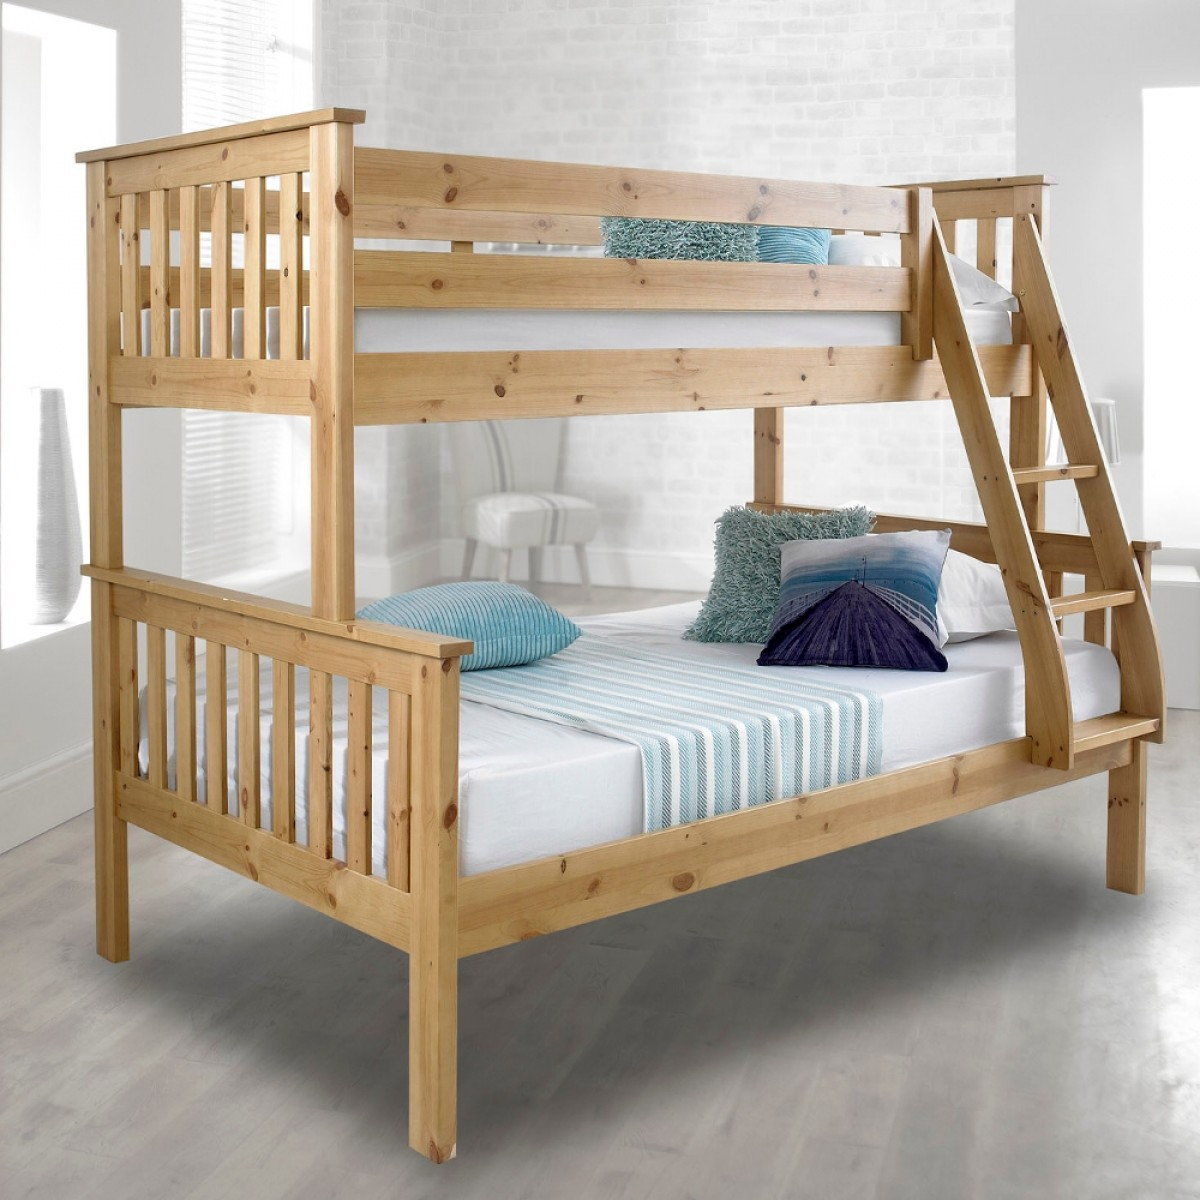 atlantis solid pine wooden triple sleeper bunk bed. Black Bedroom Furniture Sets. Home Design Ideas